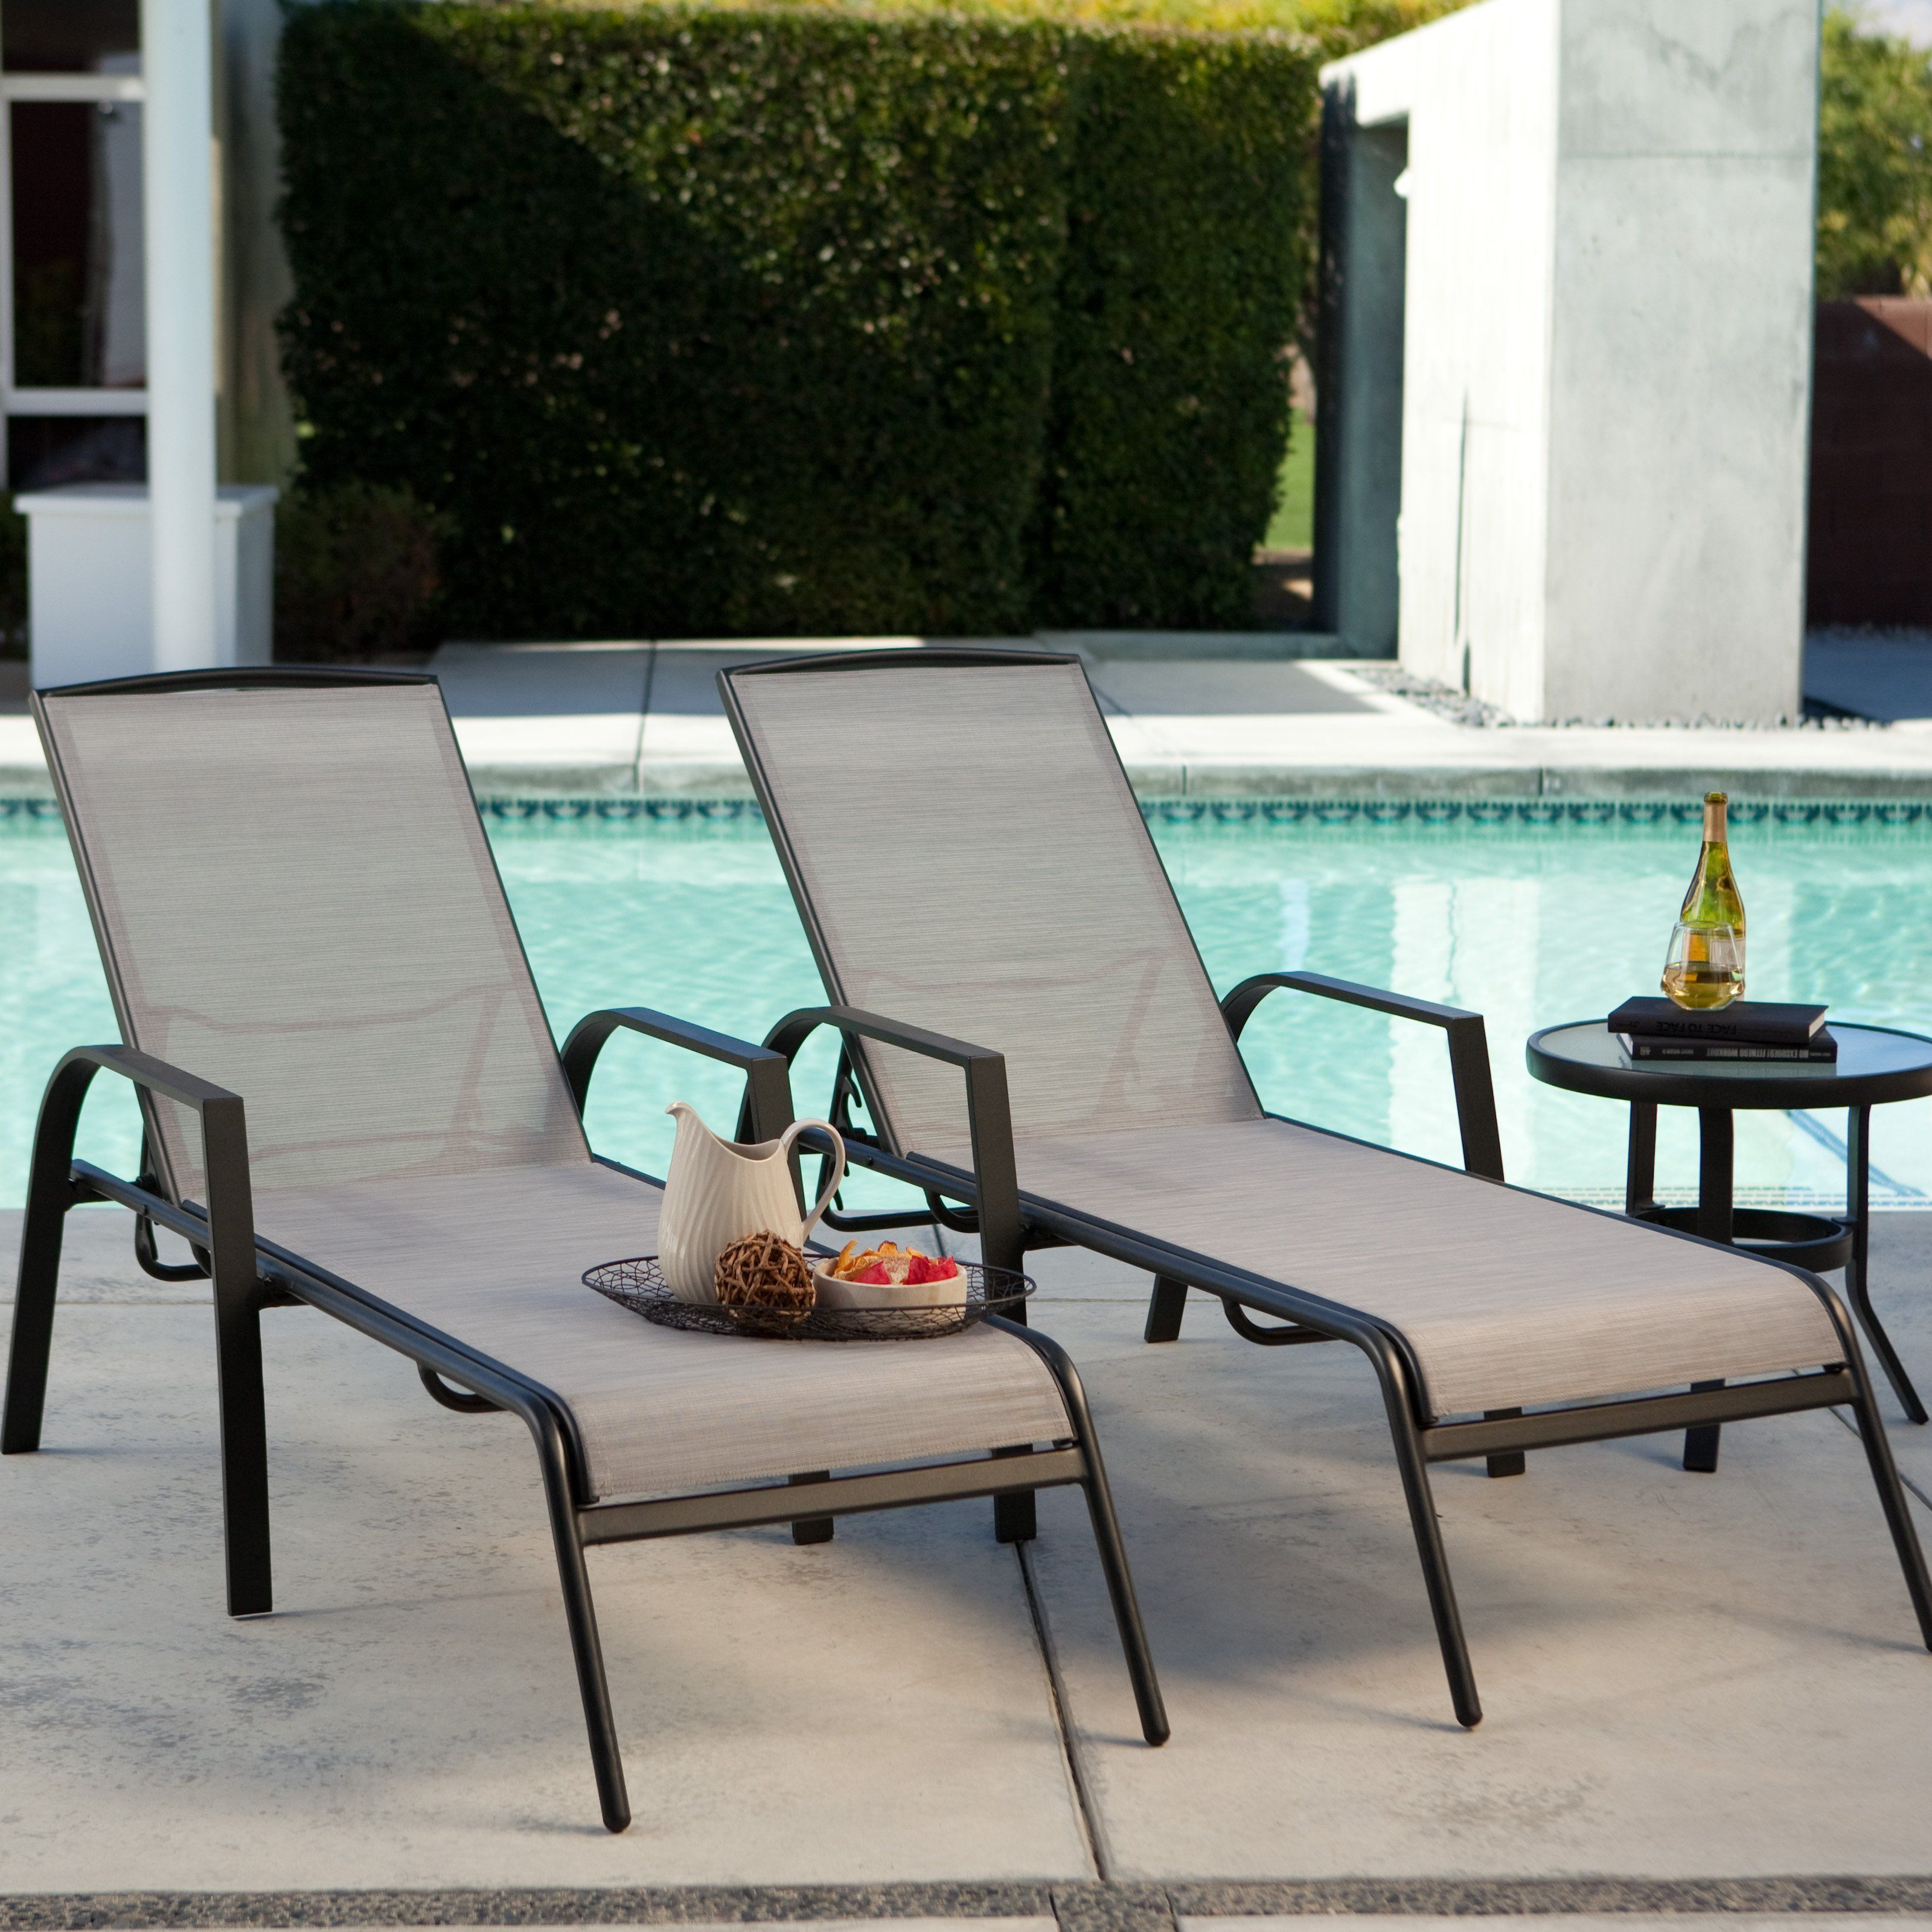 inspiring outdoor chaise lounge | Have to have it. Metropolitan Poolside Chaise Lounge - Set ...